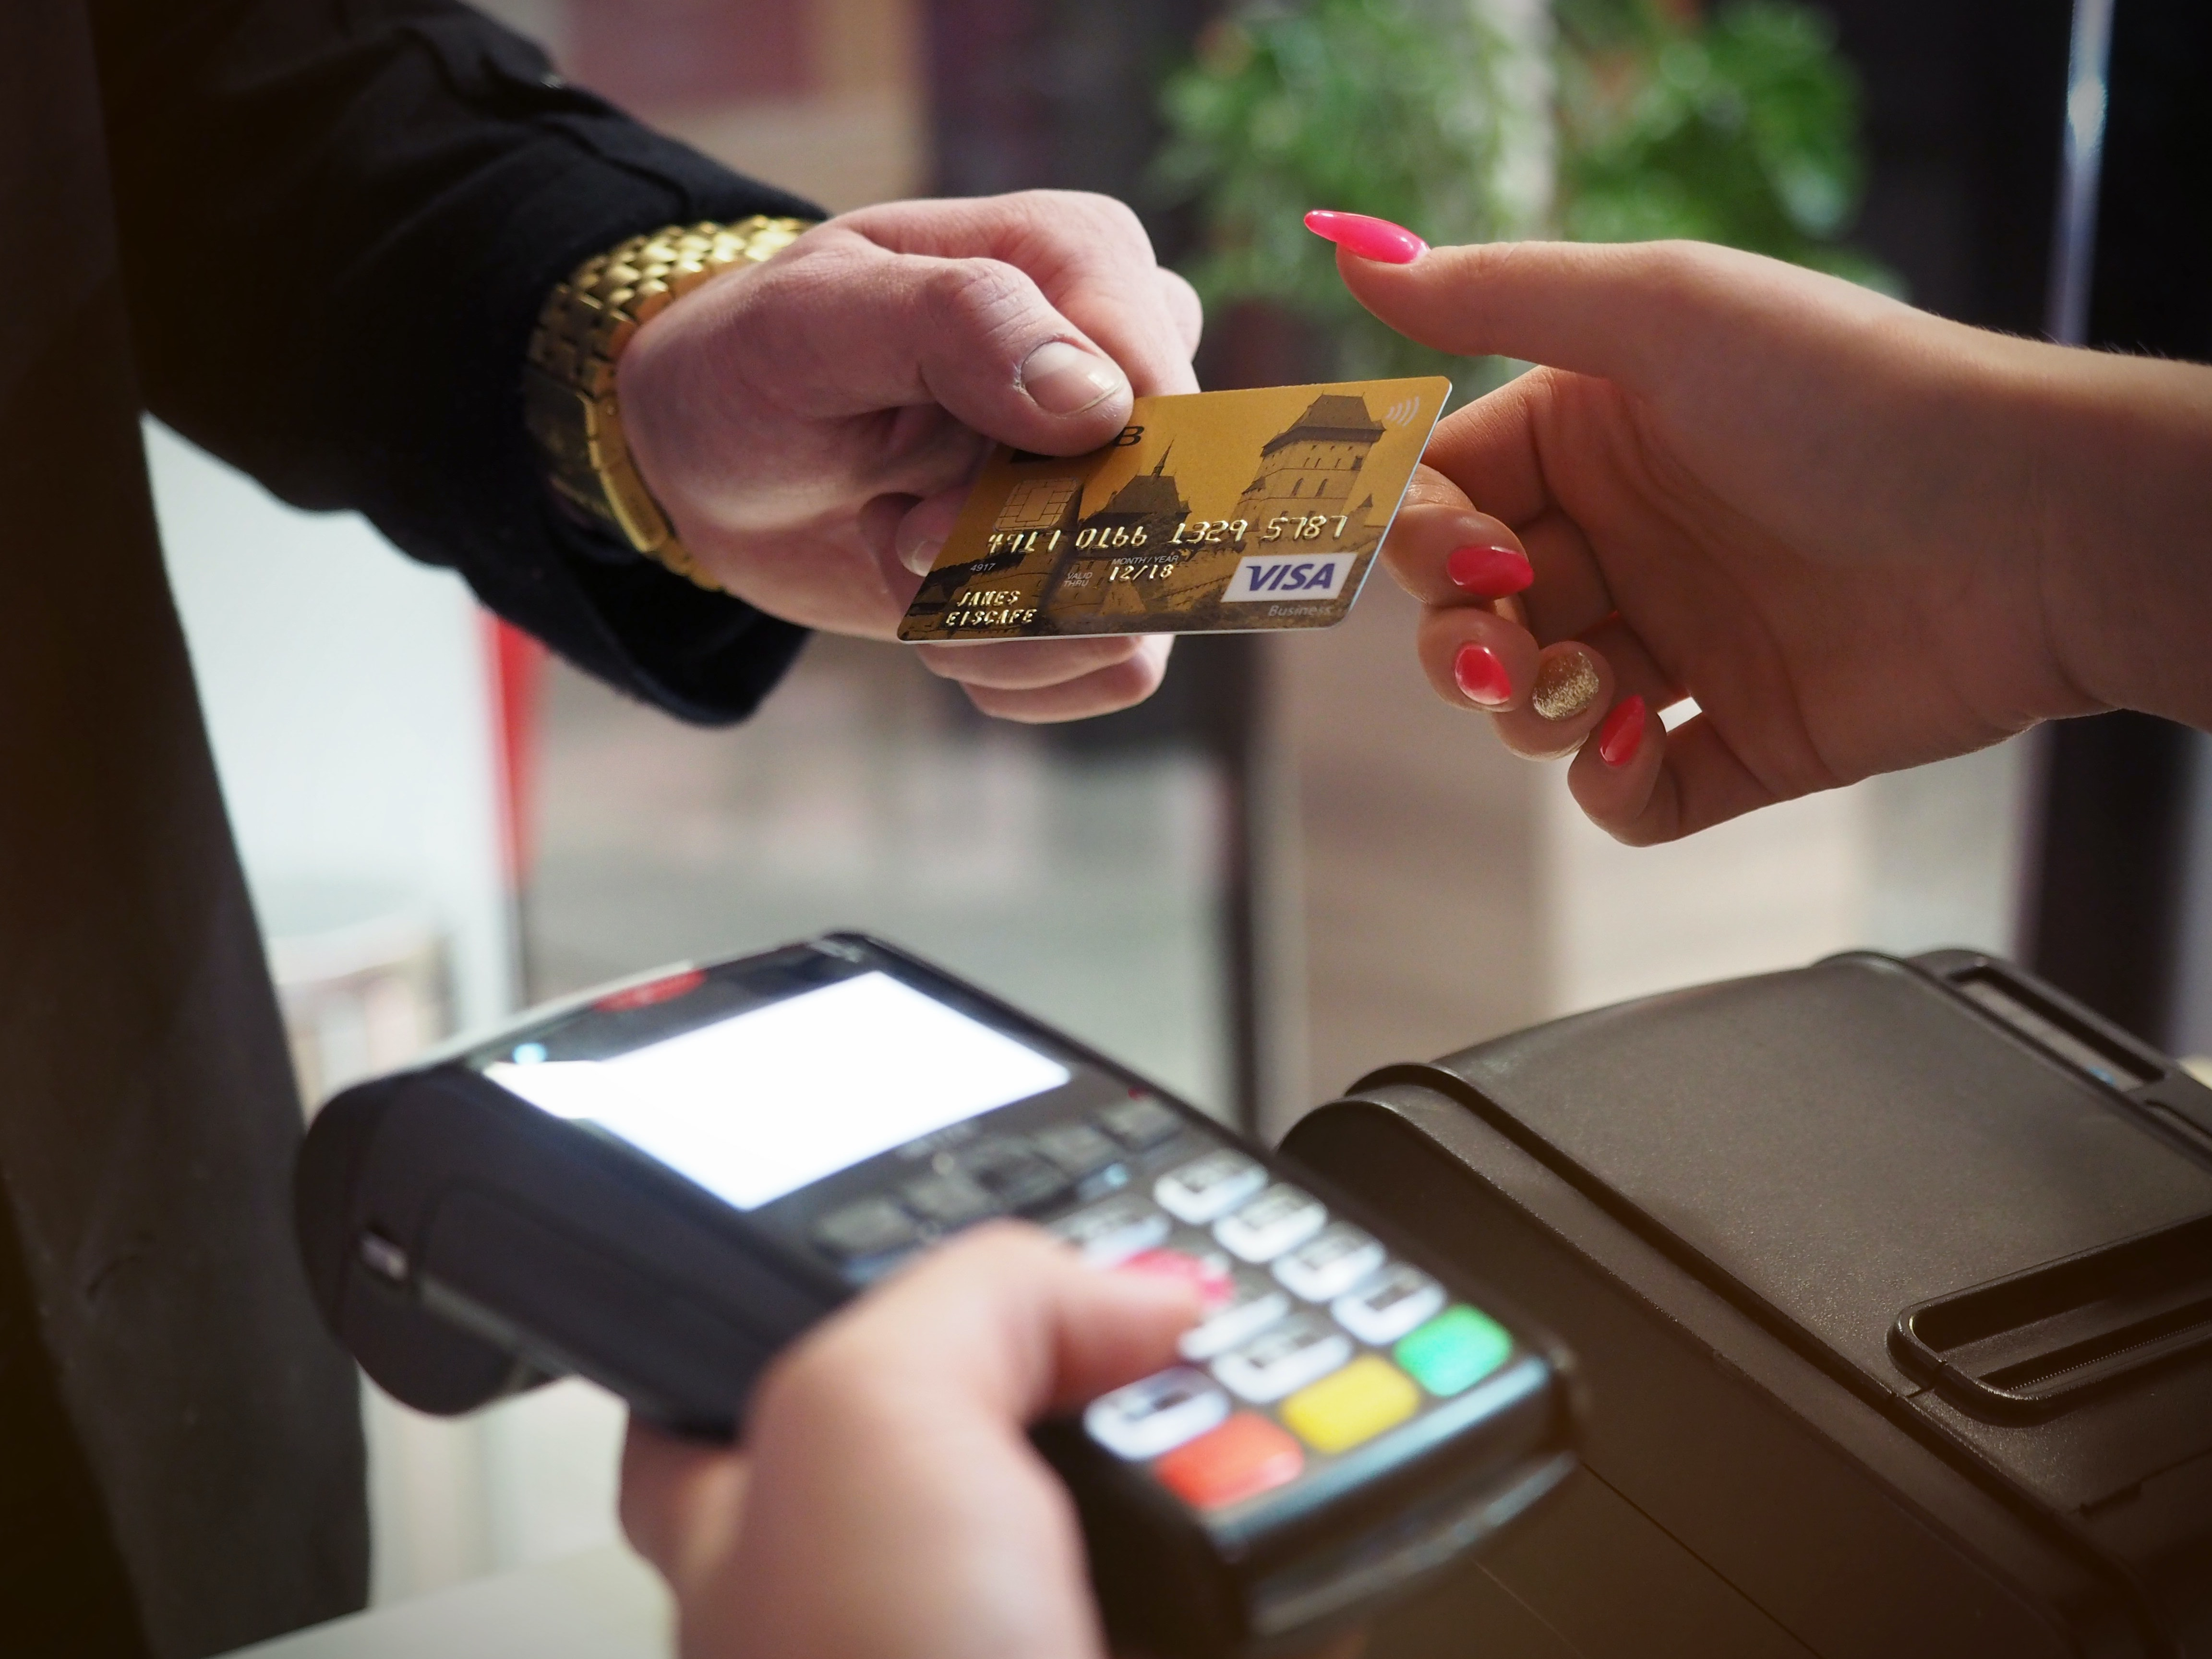 RBI to Roll Out Offline-Based Digital Payments through Cards, Wallets